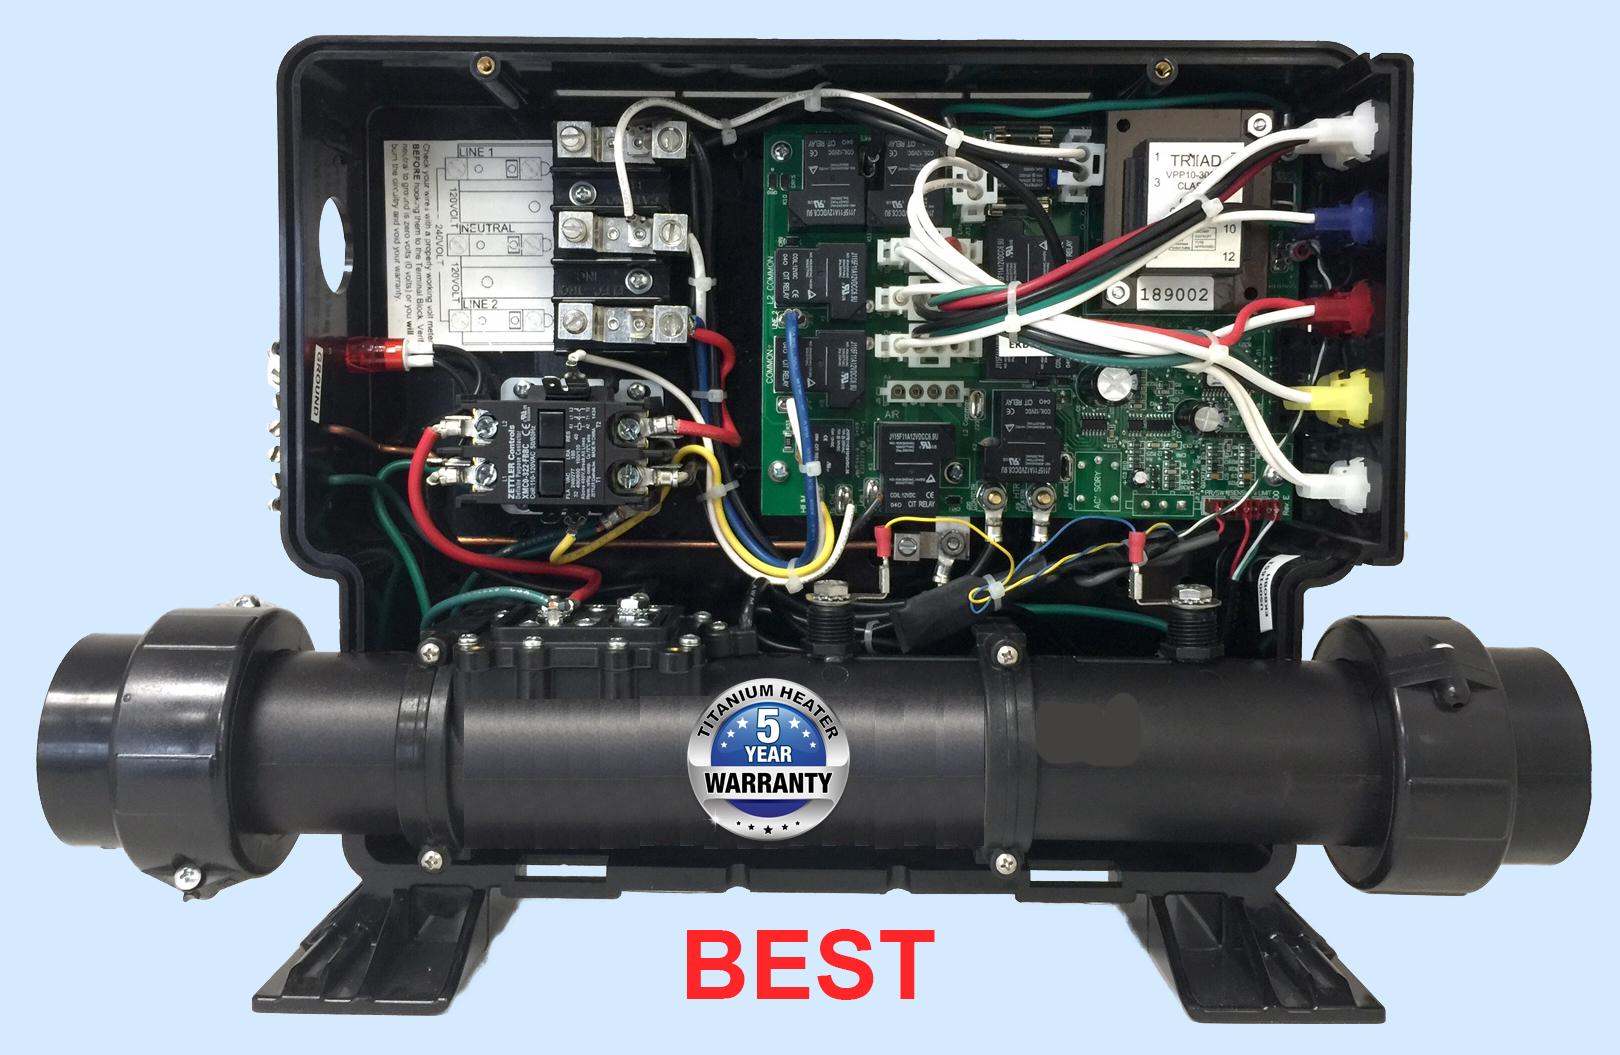 USC_CosmoHeat_Warranty_Open_best spa builders ap 4 wiring diagram coast spa wiring diagram \u2022 wiring spa heater wiring diagram at readyjetset.co